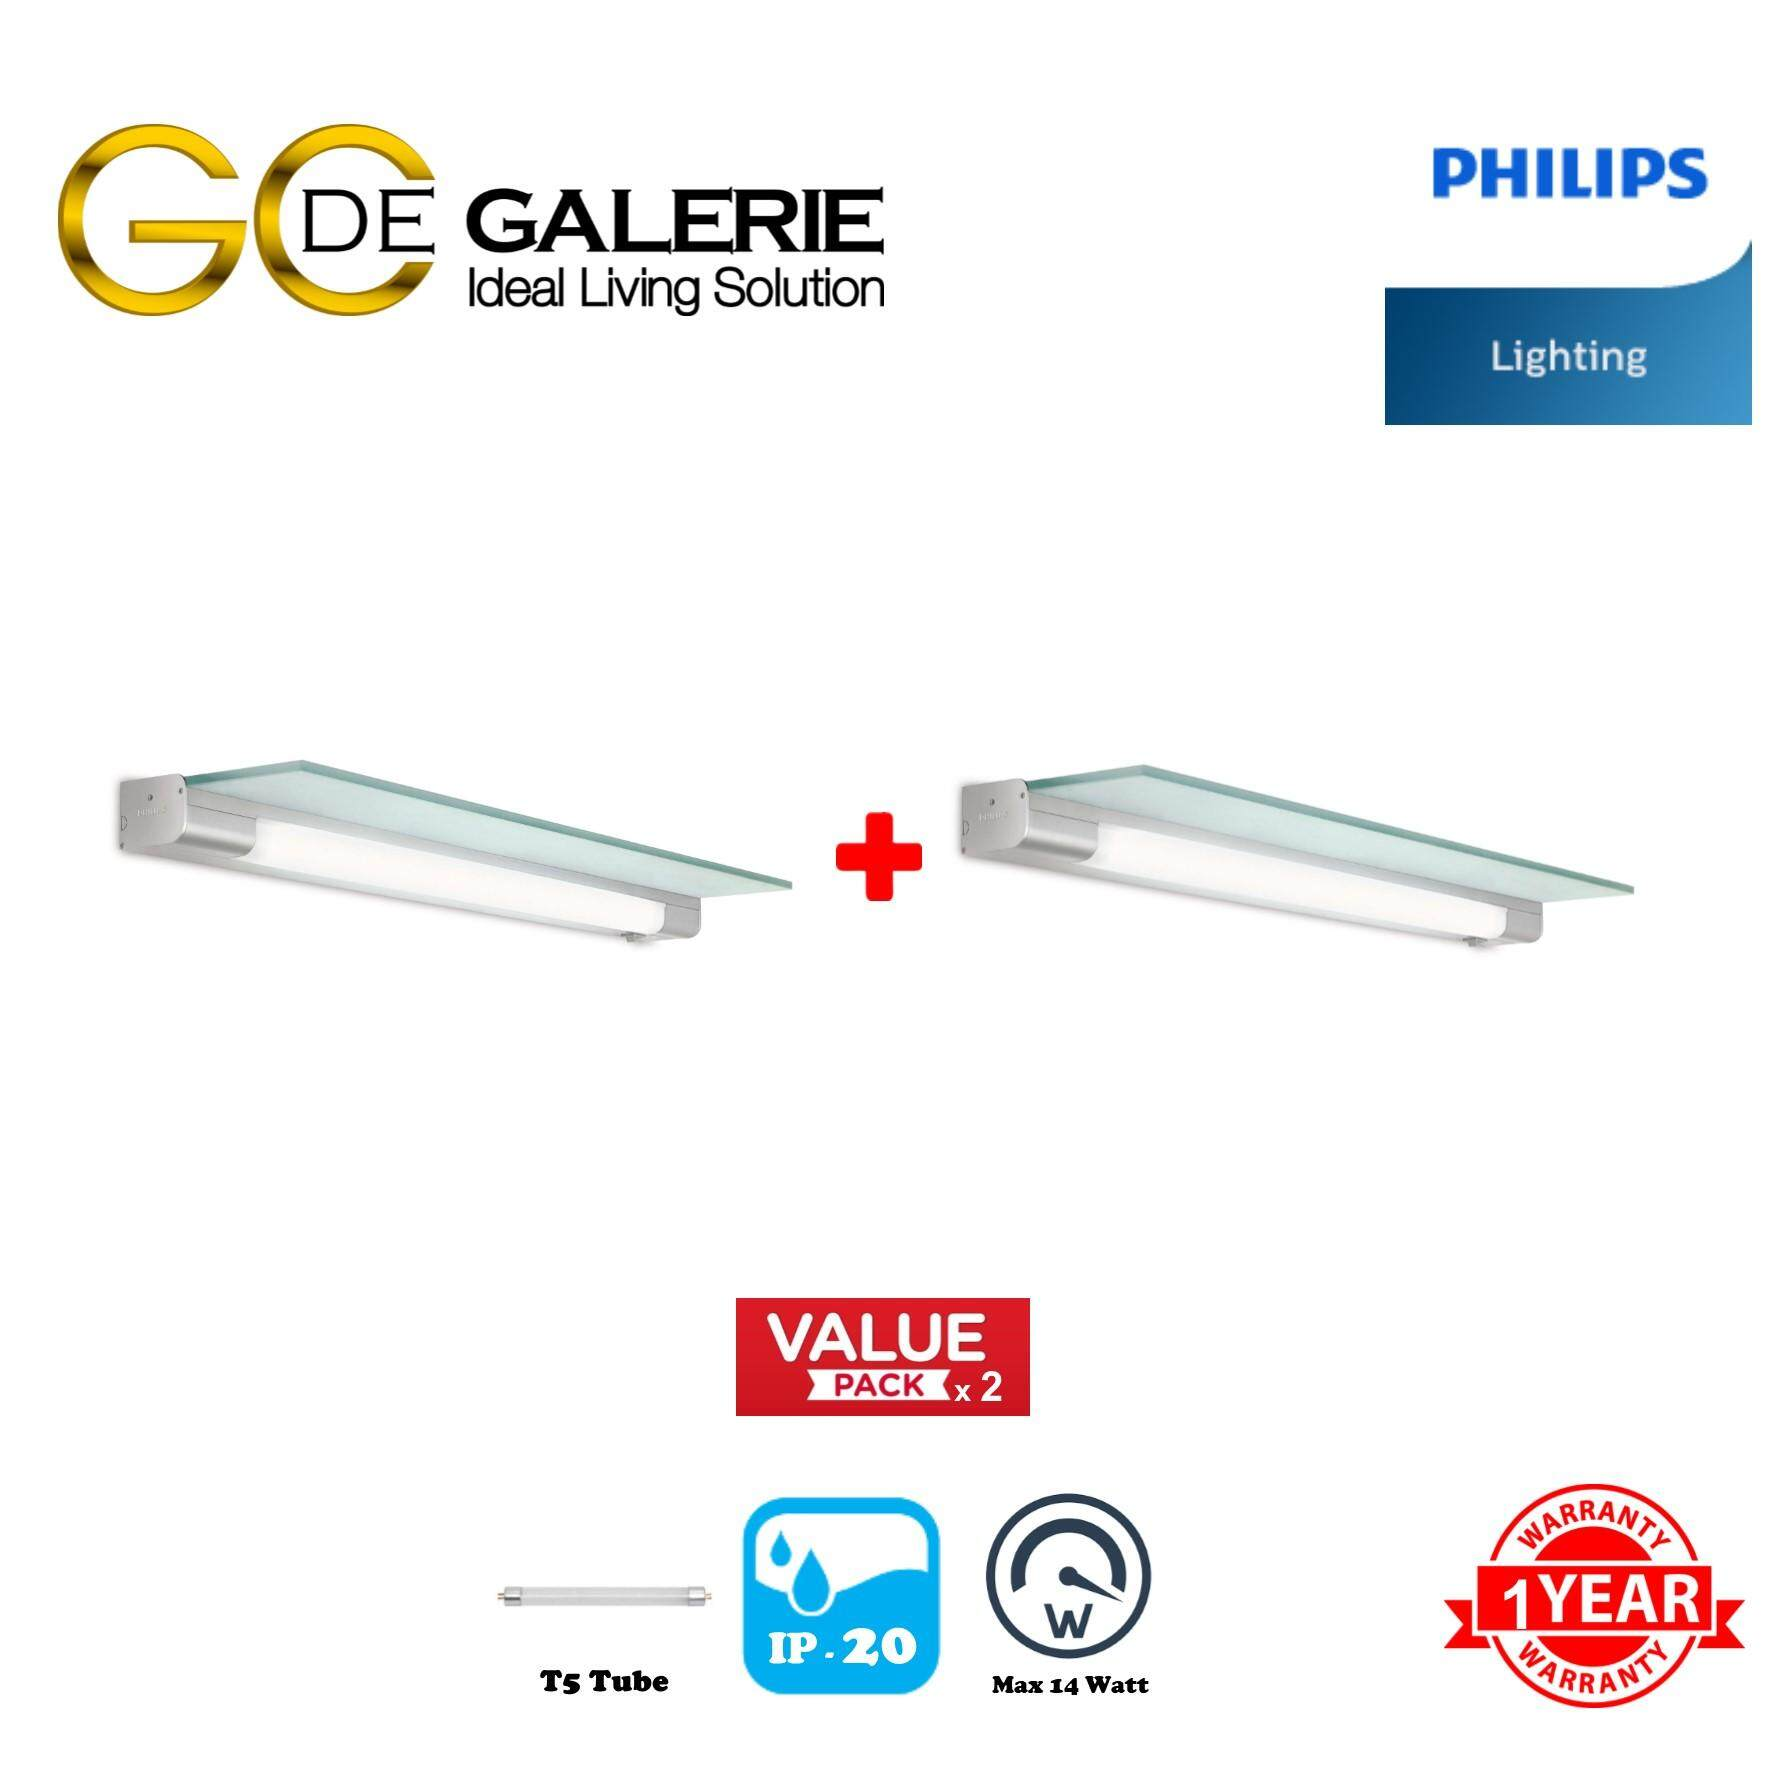 WALL LIGHT PHILIPS 38104 GREY 1x14W (2 PACK)